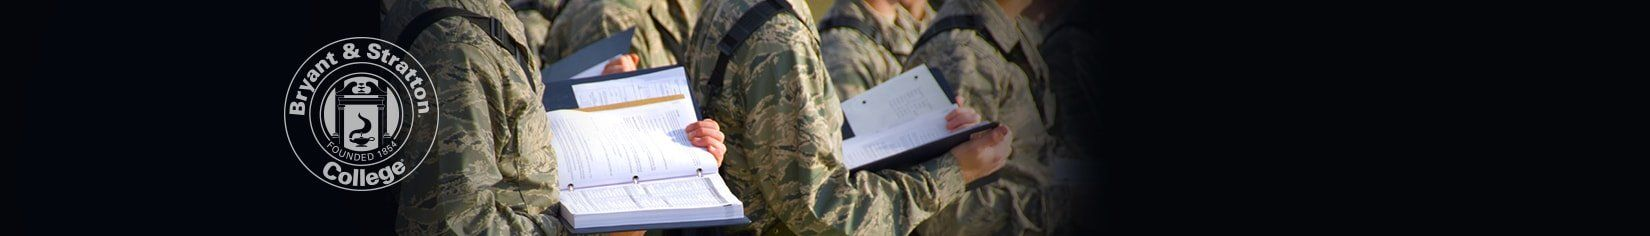 Military students reading textbooks